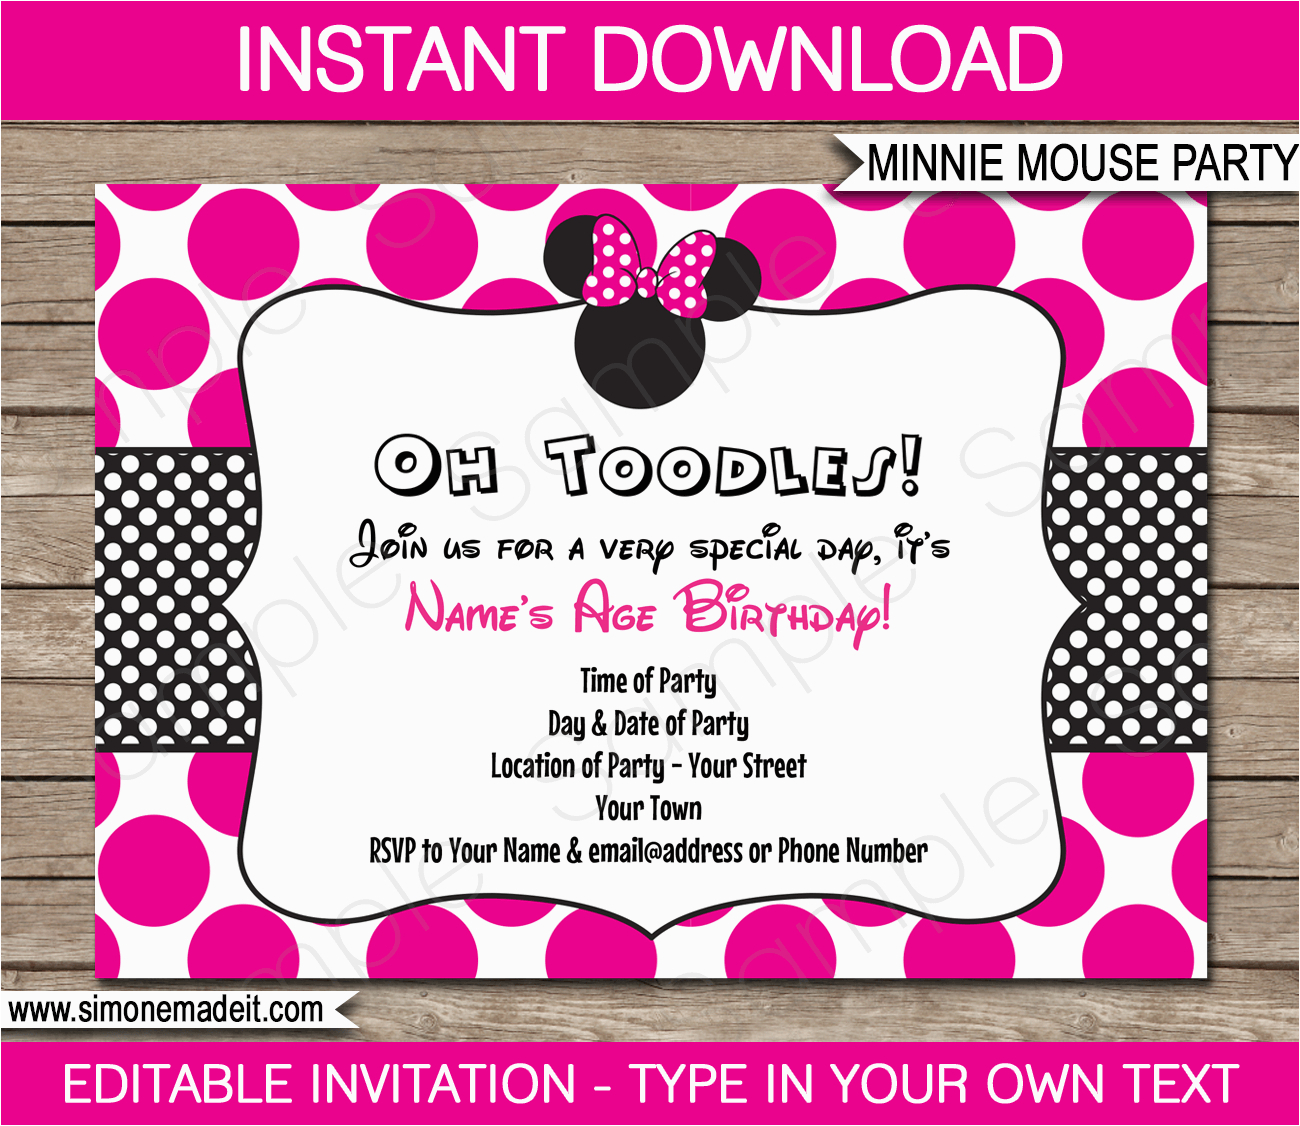 Free Customizable Minnie Mouse Birthday Invitations Minnie Mouse - Free Minnie Mouse Printable Templates